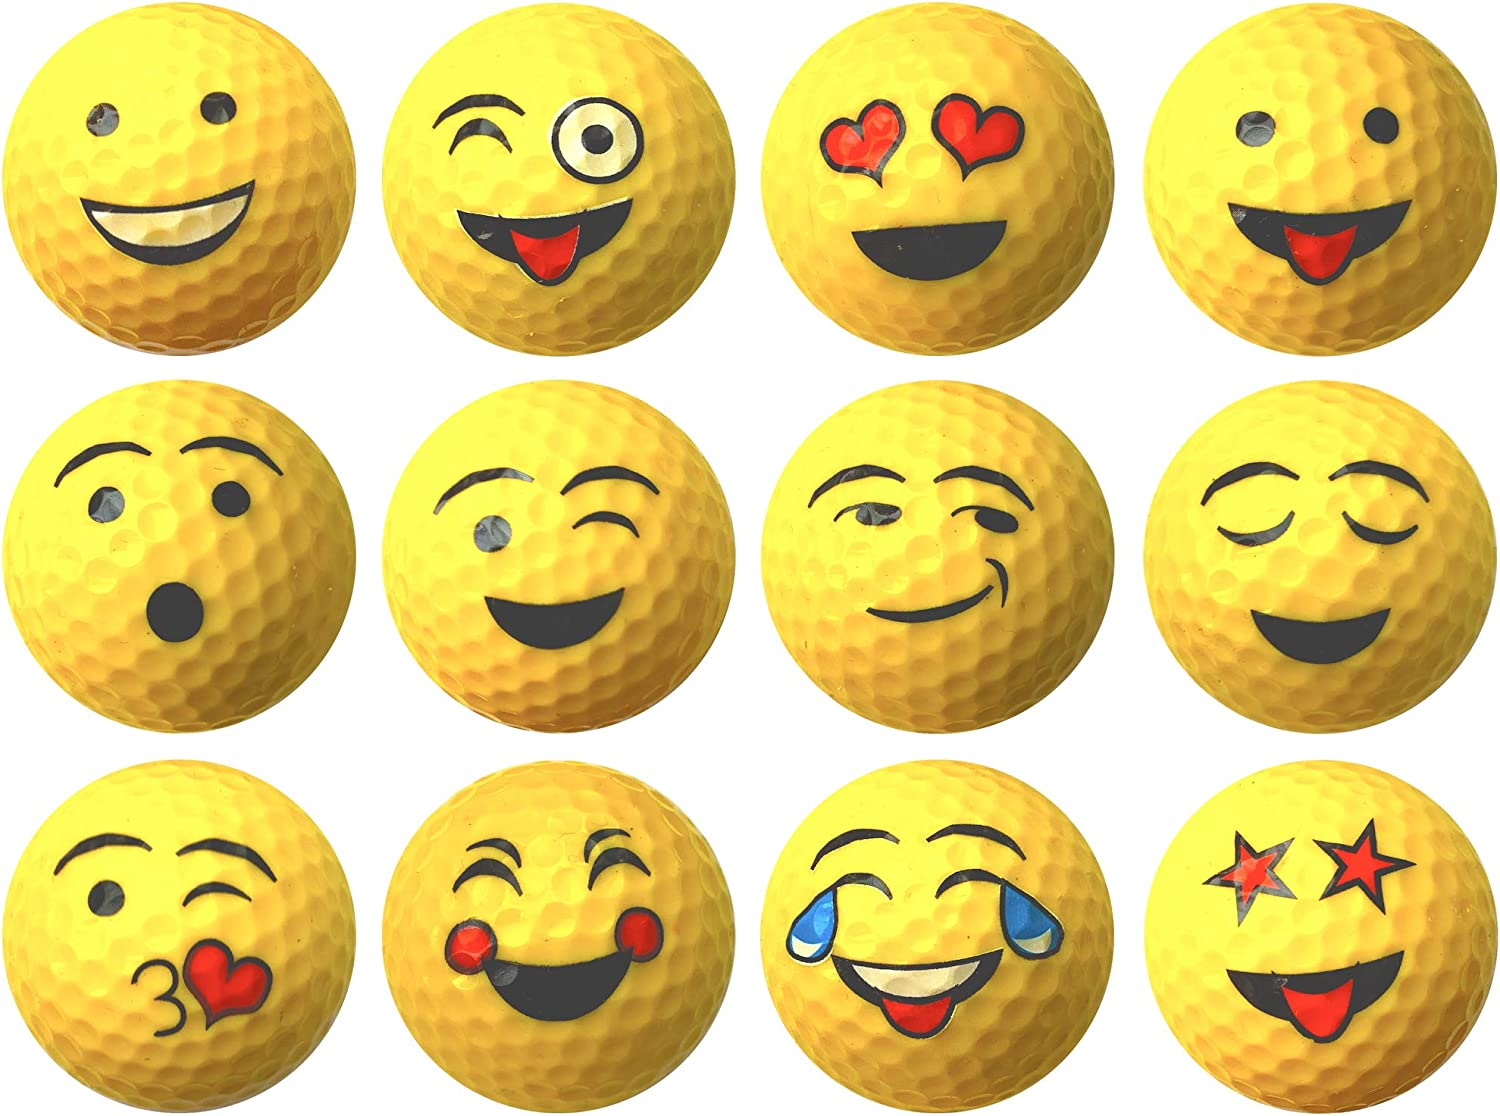 Yellow Emoji Professional Quality High-Visibility Distance Golf Ball Set of 12 for Course Play, Practice, Gifts, and More (One Dozen)